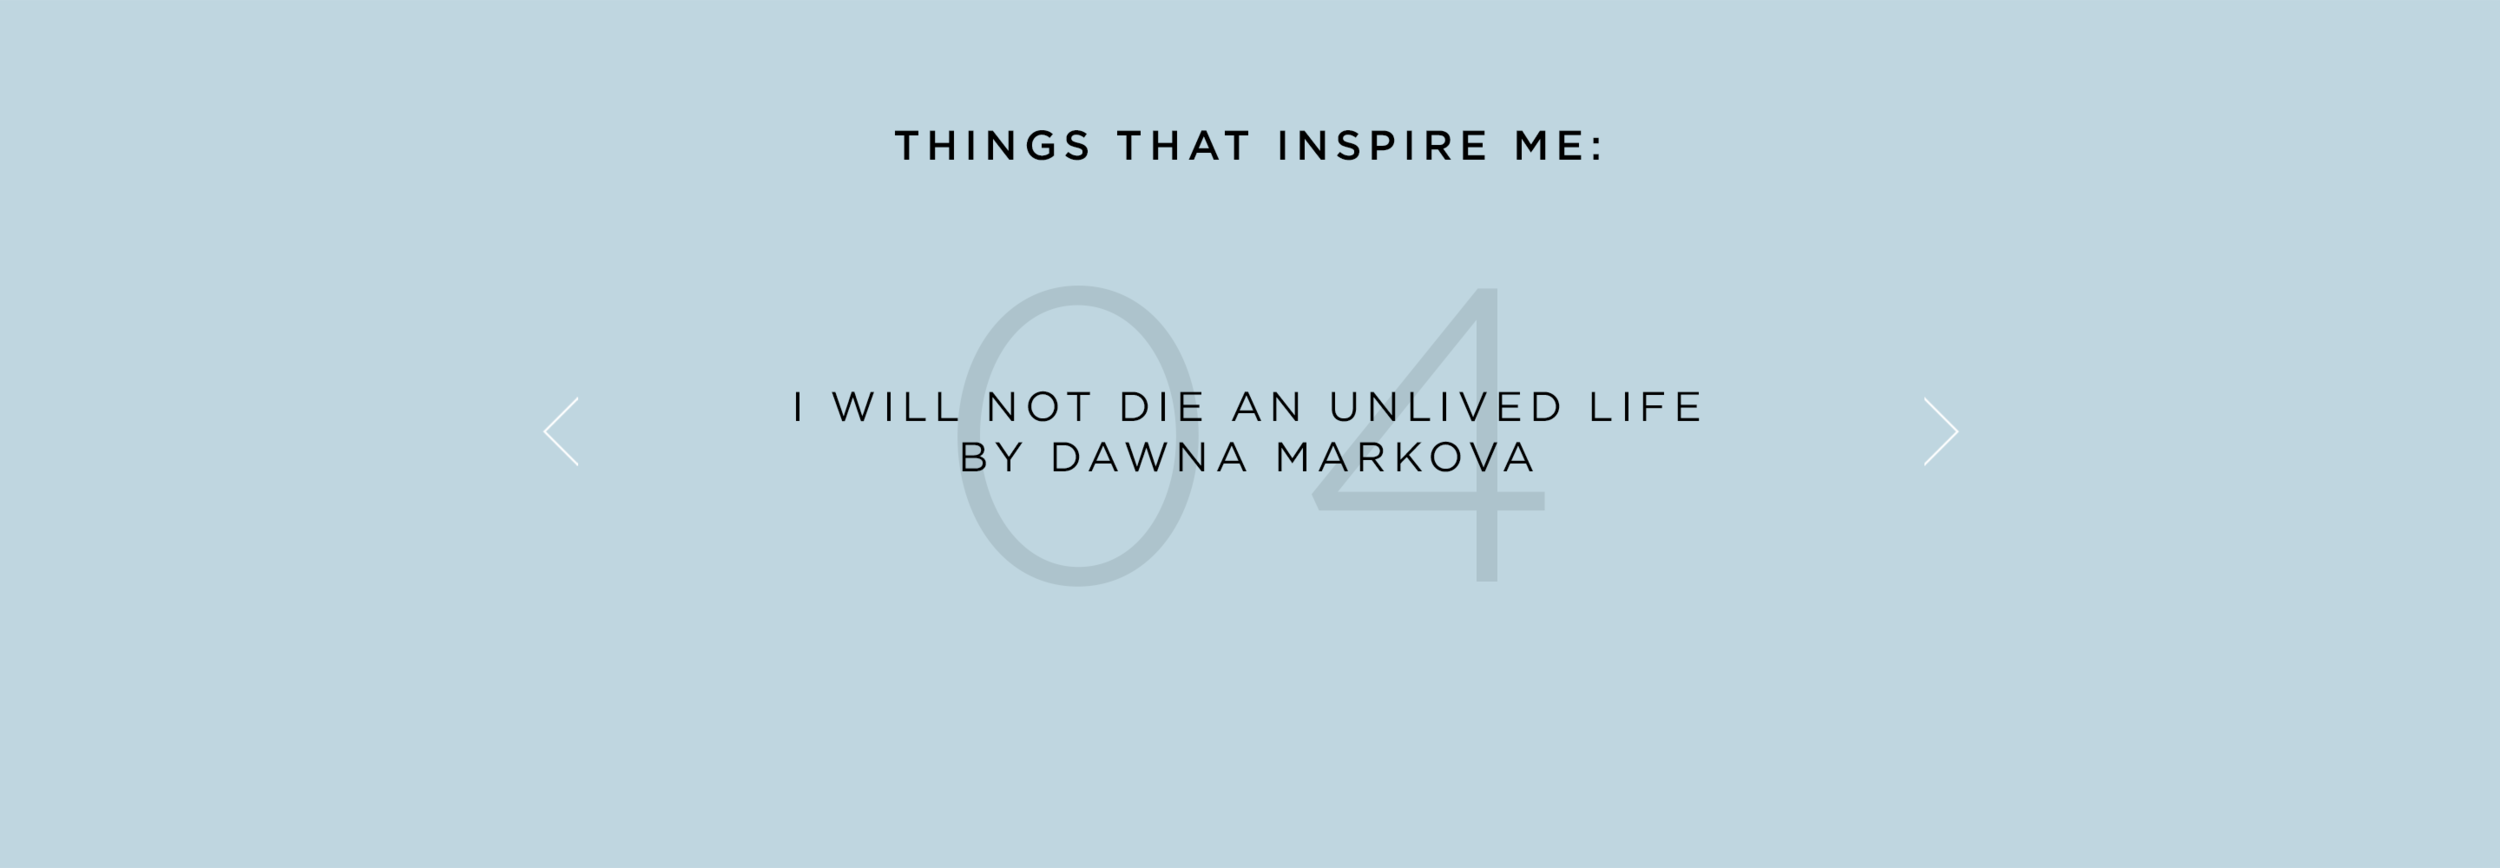 INSPIRE_04.png